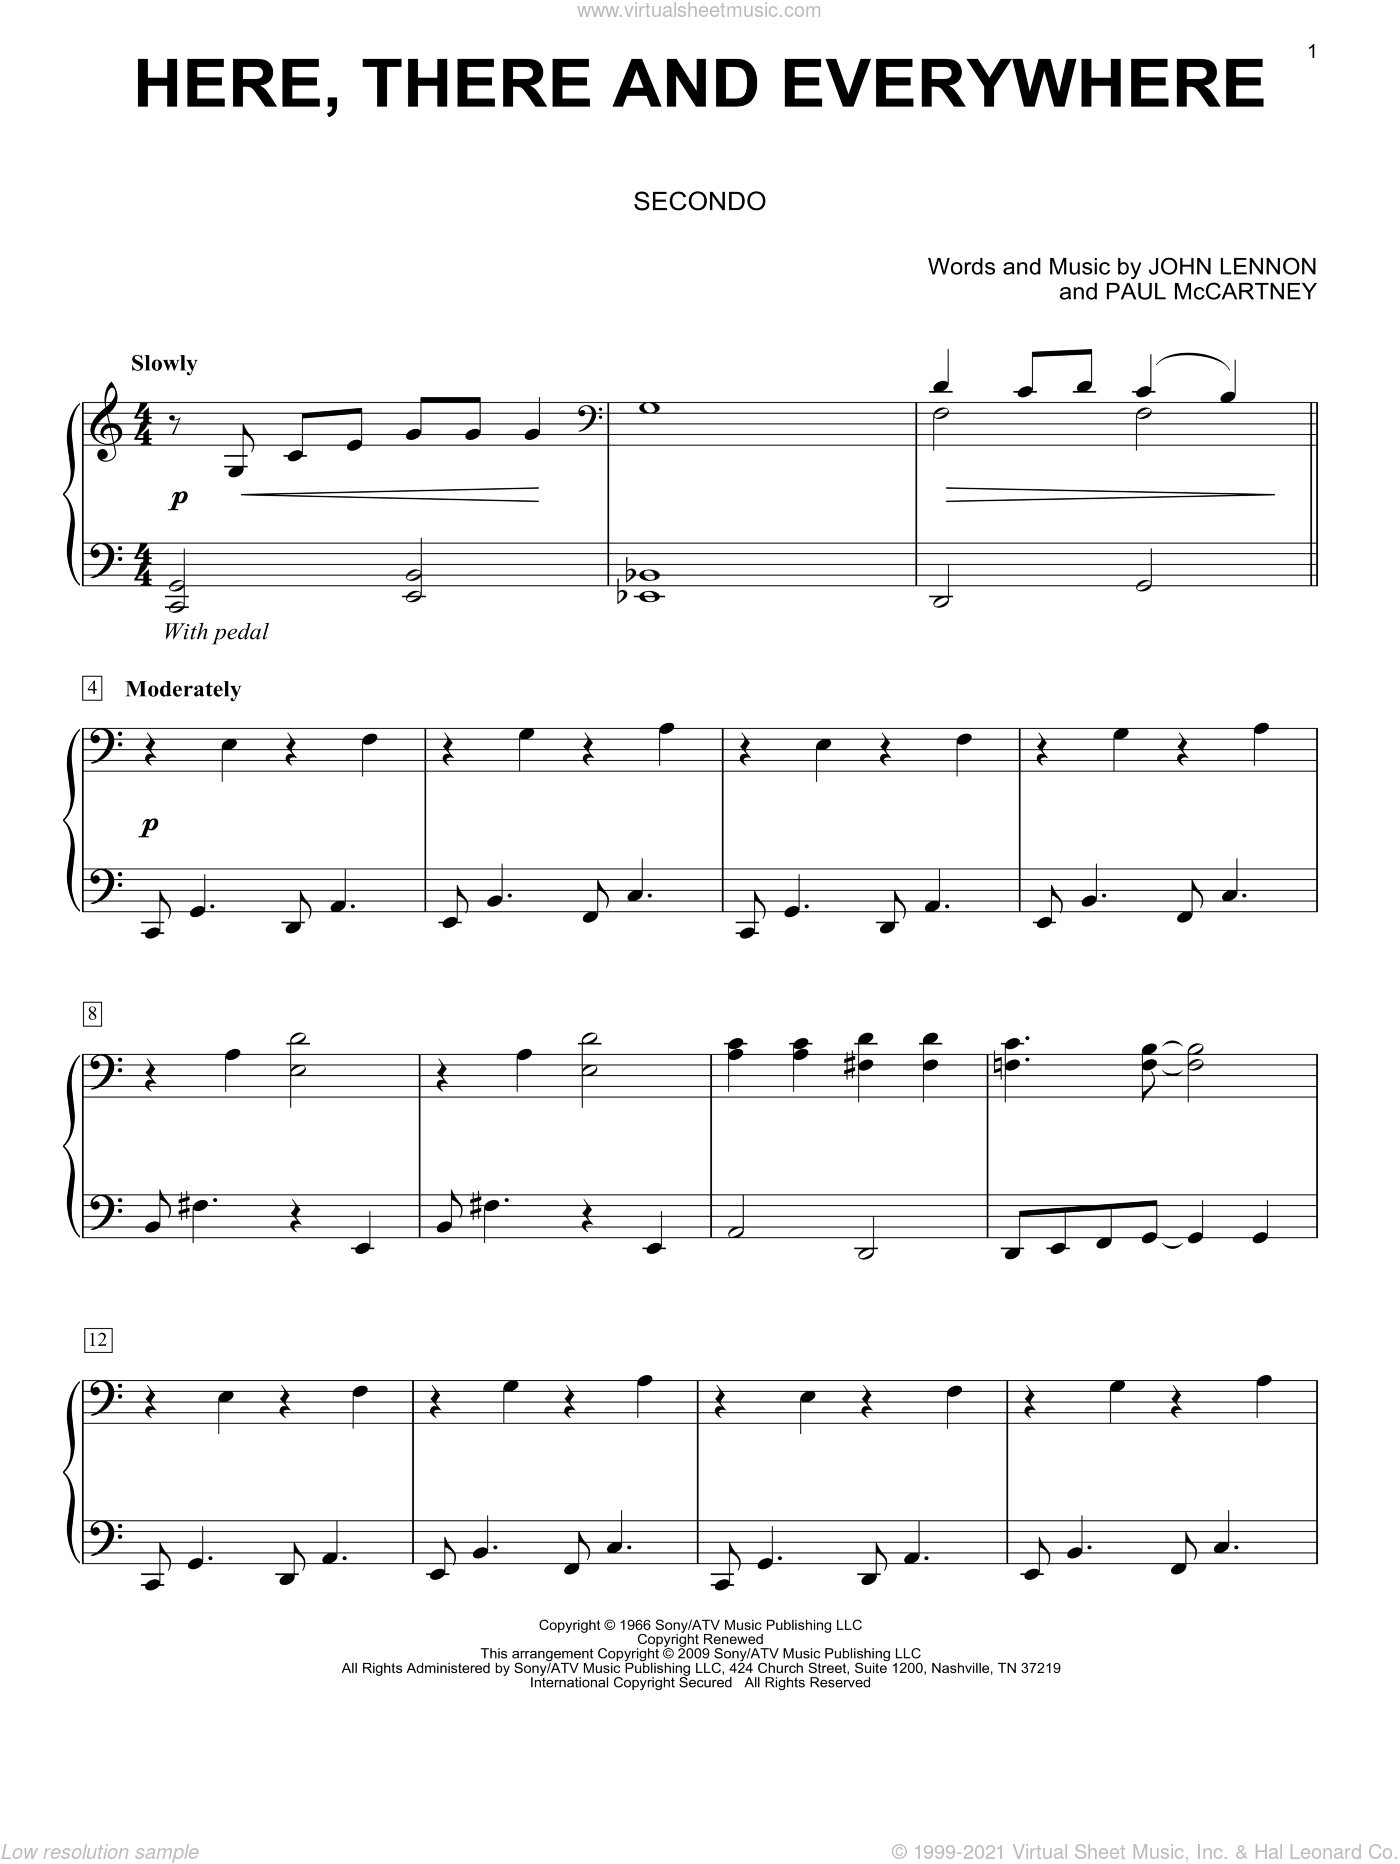 Here, There And Everywhere sheet music for piano four hands (duets) by Paul McCartney